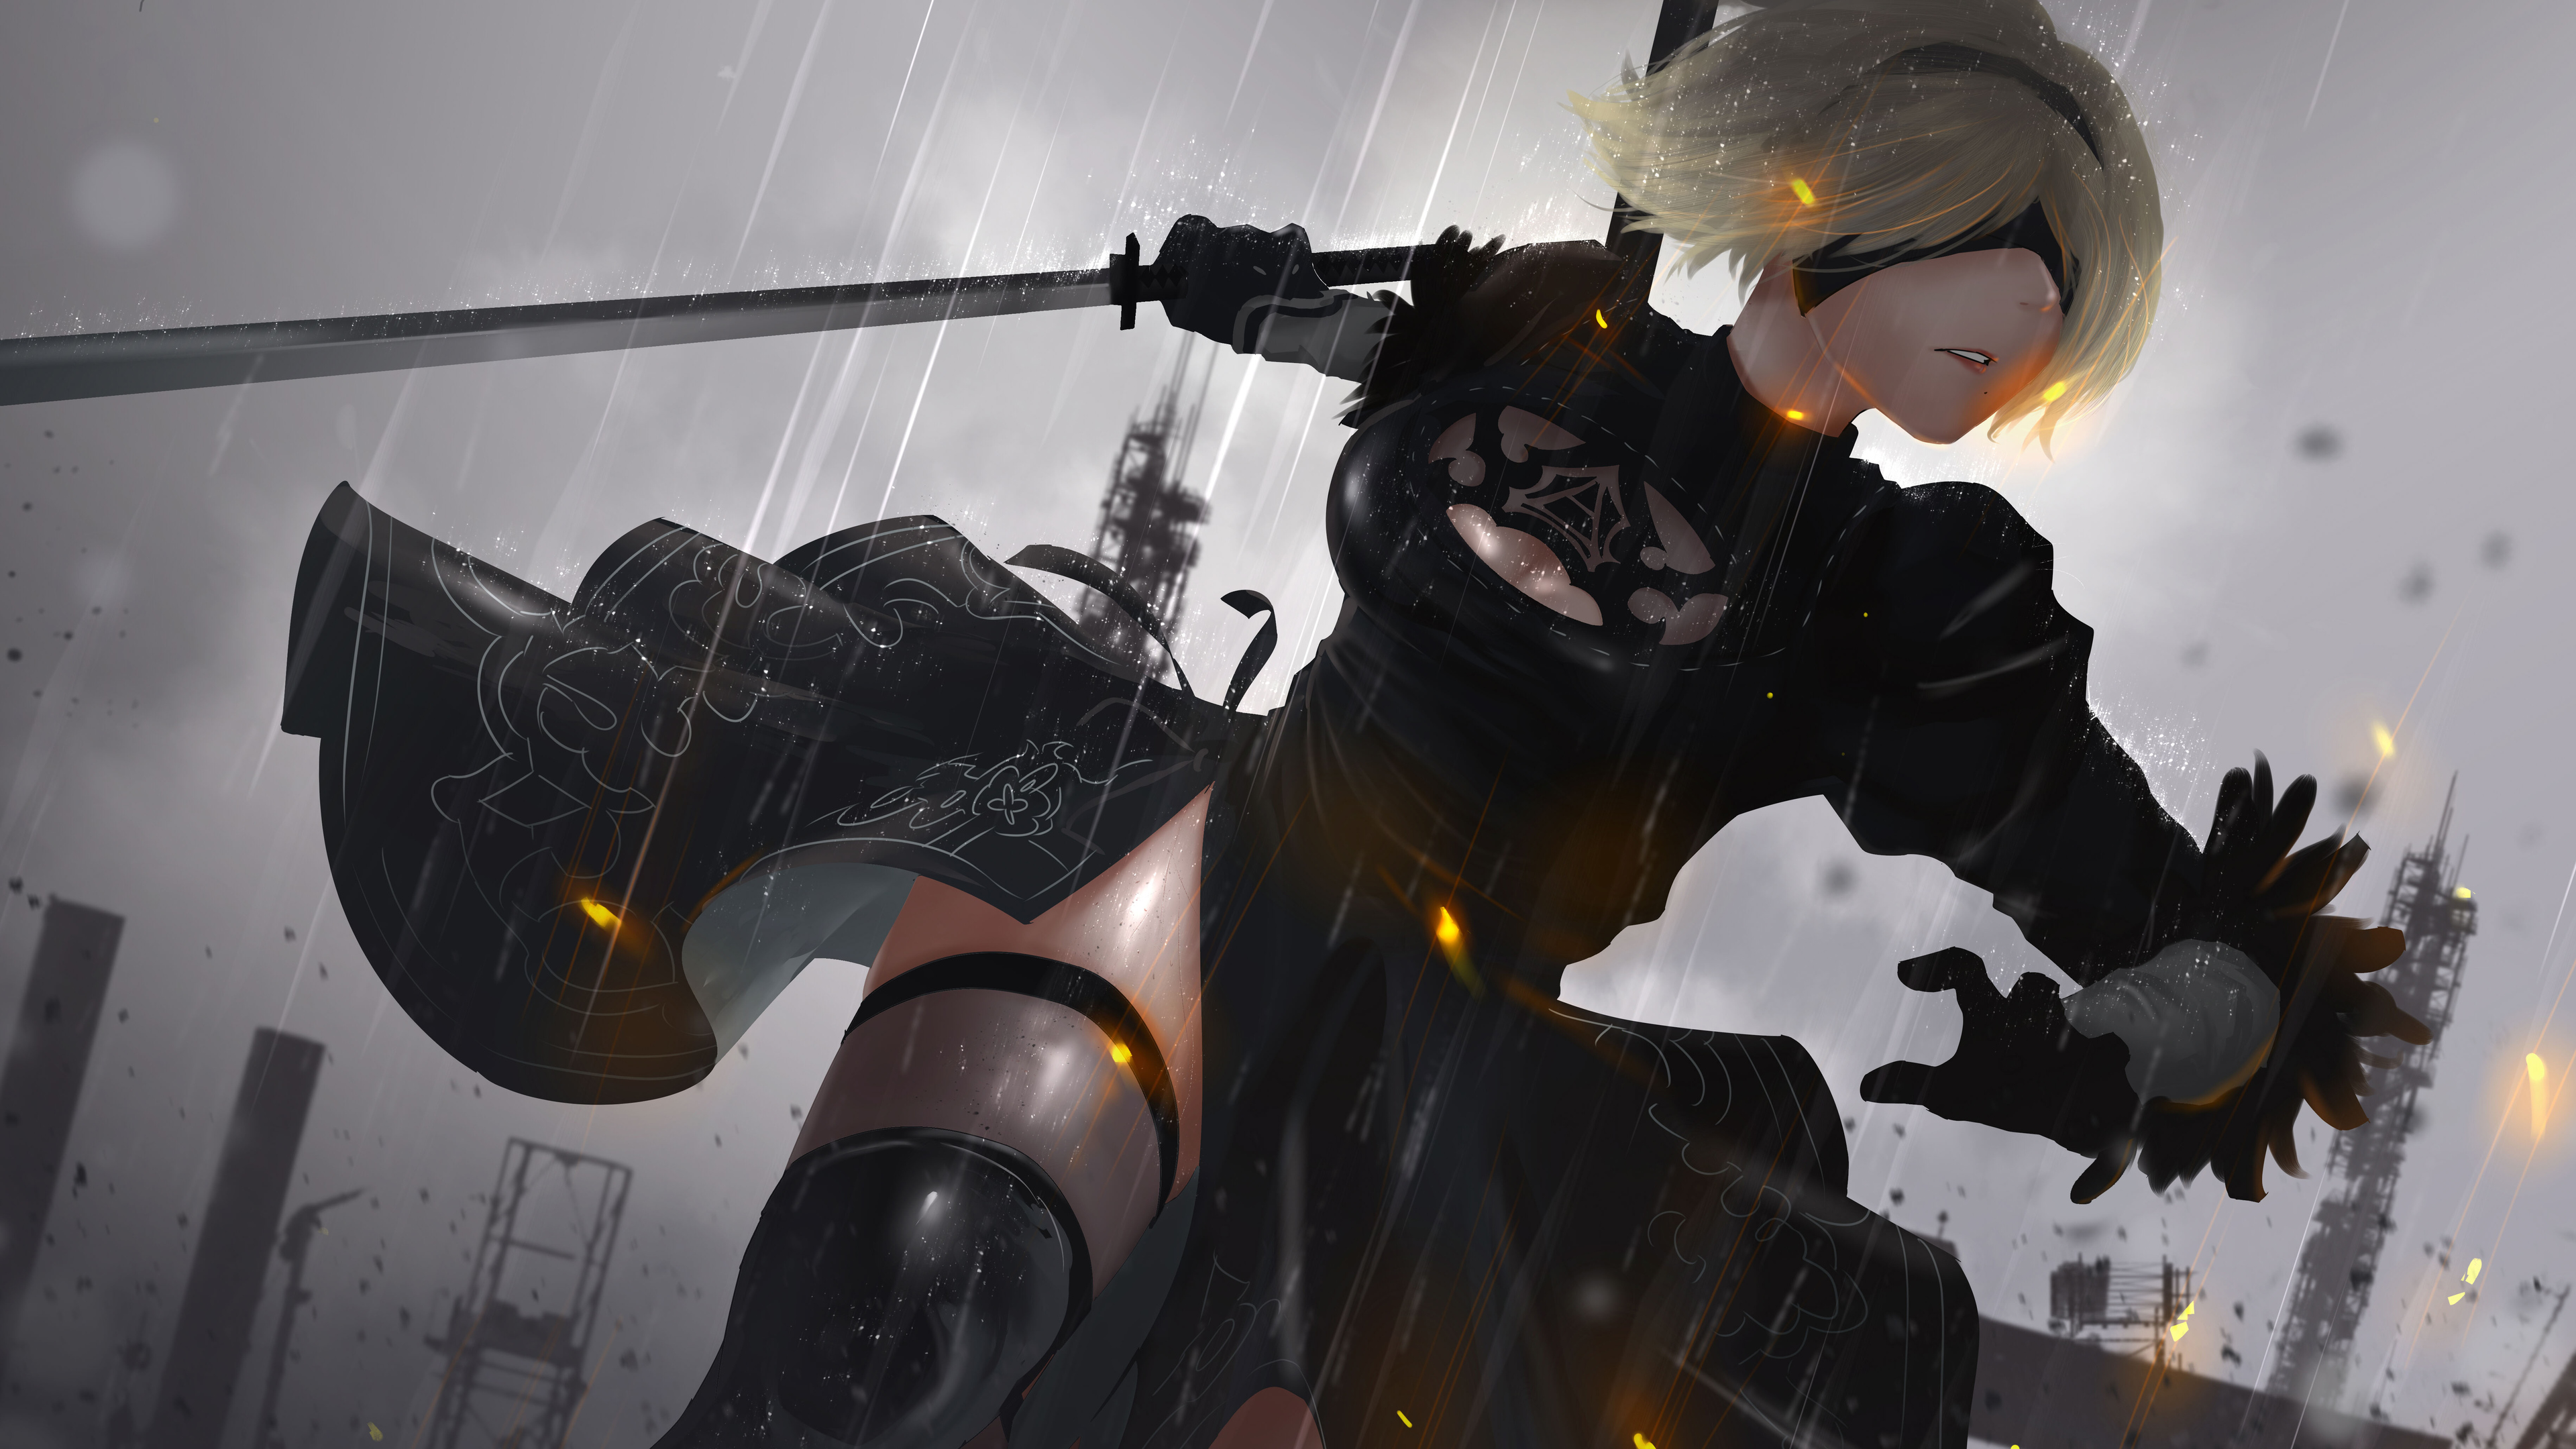 2b nier automata 4k 1558221081 - 2B NieR Automata 4k - nier automata wallpapers, hd-wallpapers, games wallpapers, digital art wallpapers, deviantart wallpapers, artwork wallpapers, artist wallpapers, 4k-wallpapers